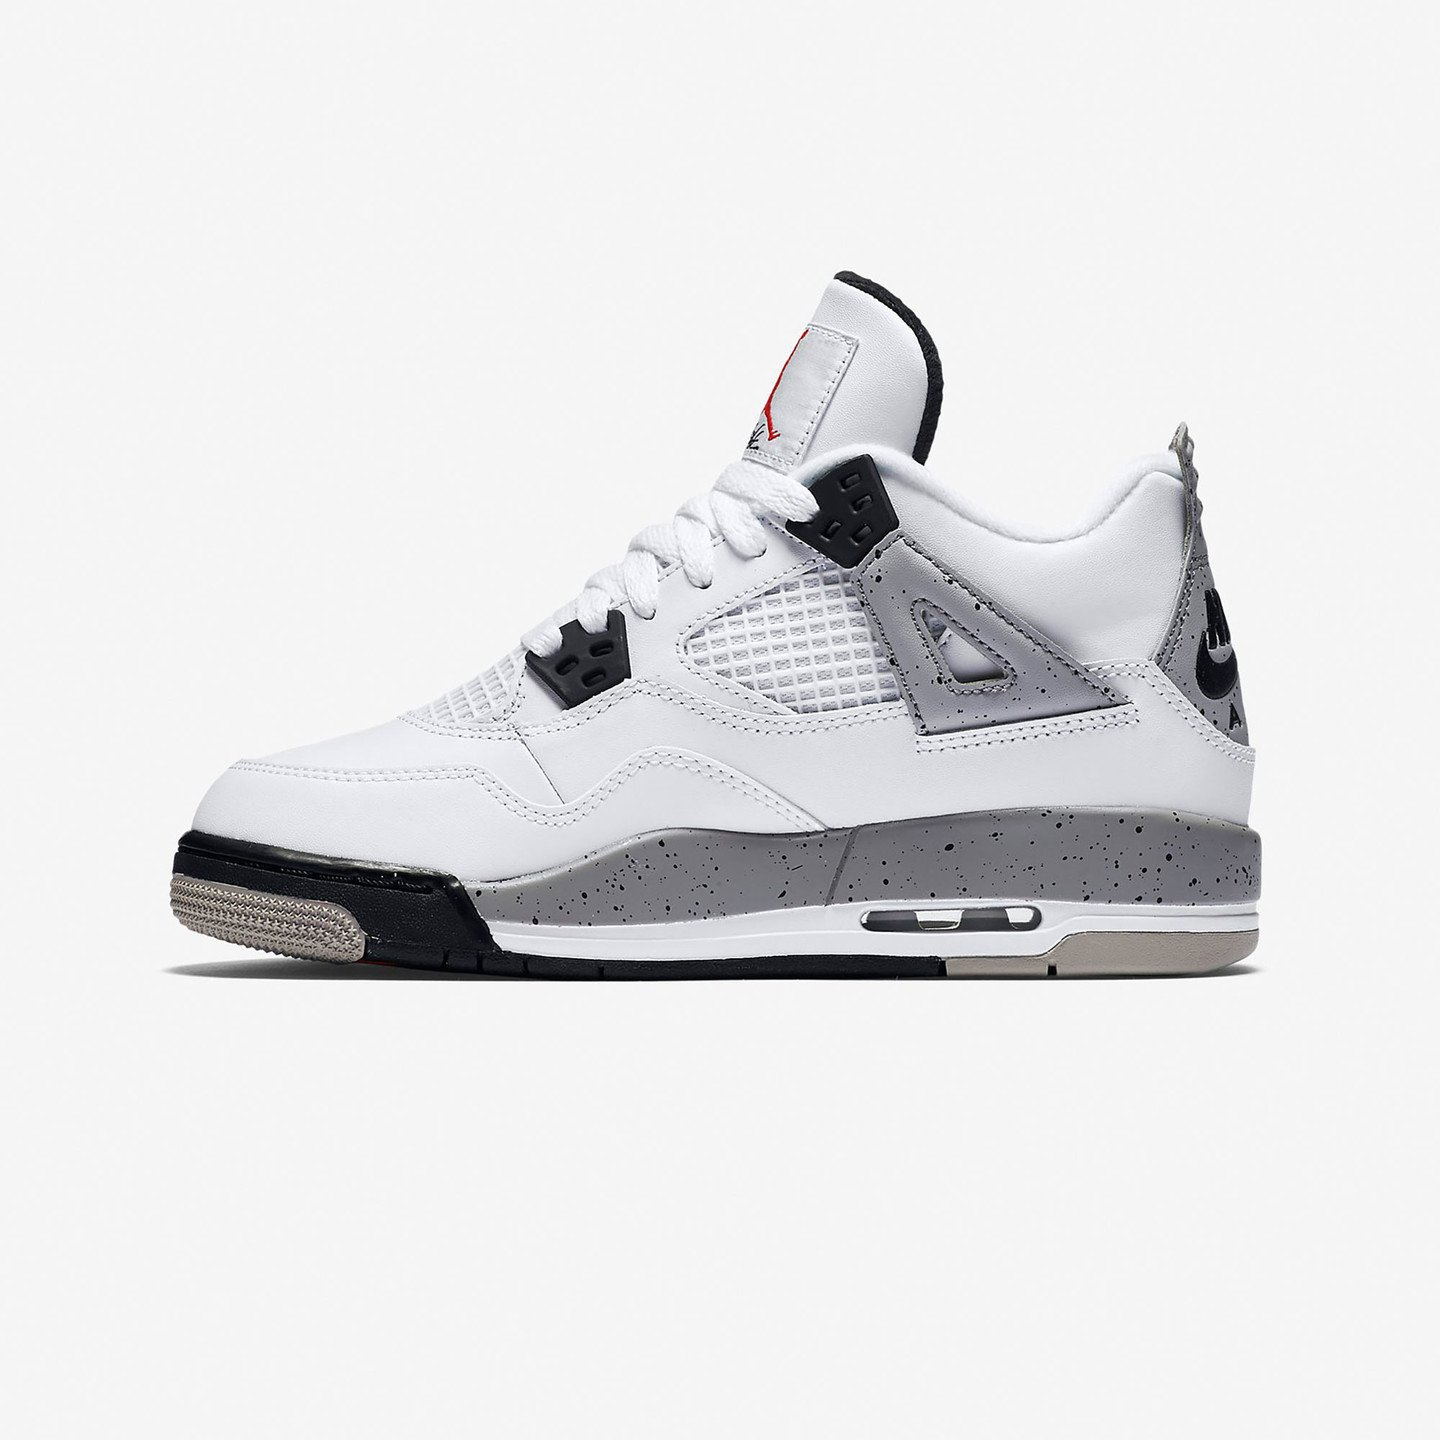 Nike Air Jordan 4 Retro GS Cement White / Fire Red / Tech Grey / Black 836016-192-37.5